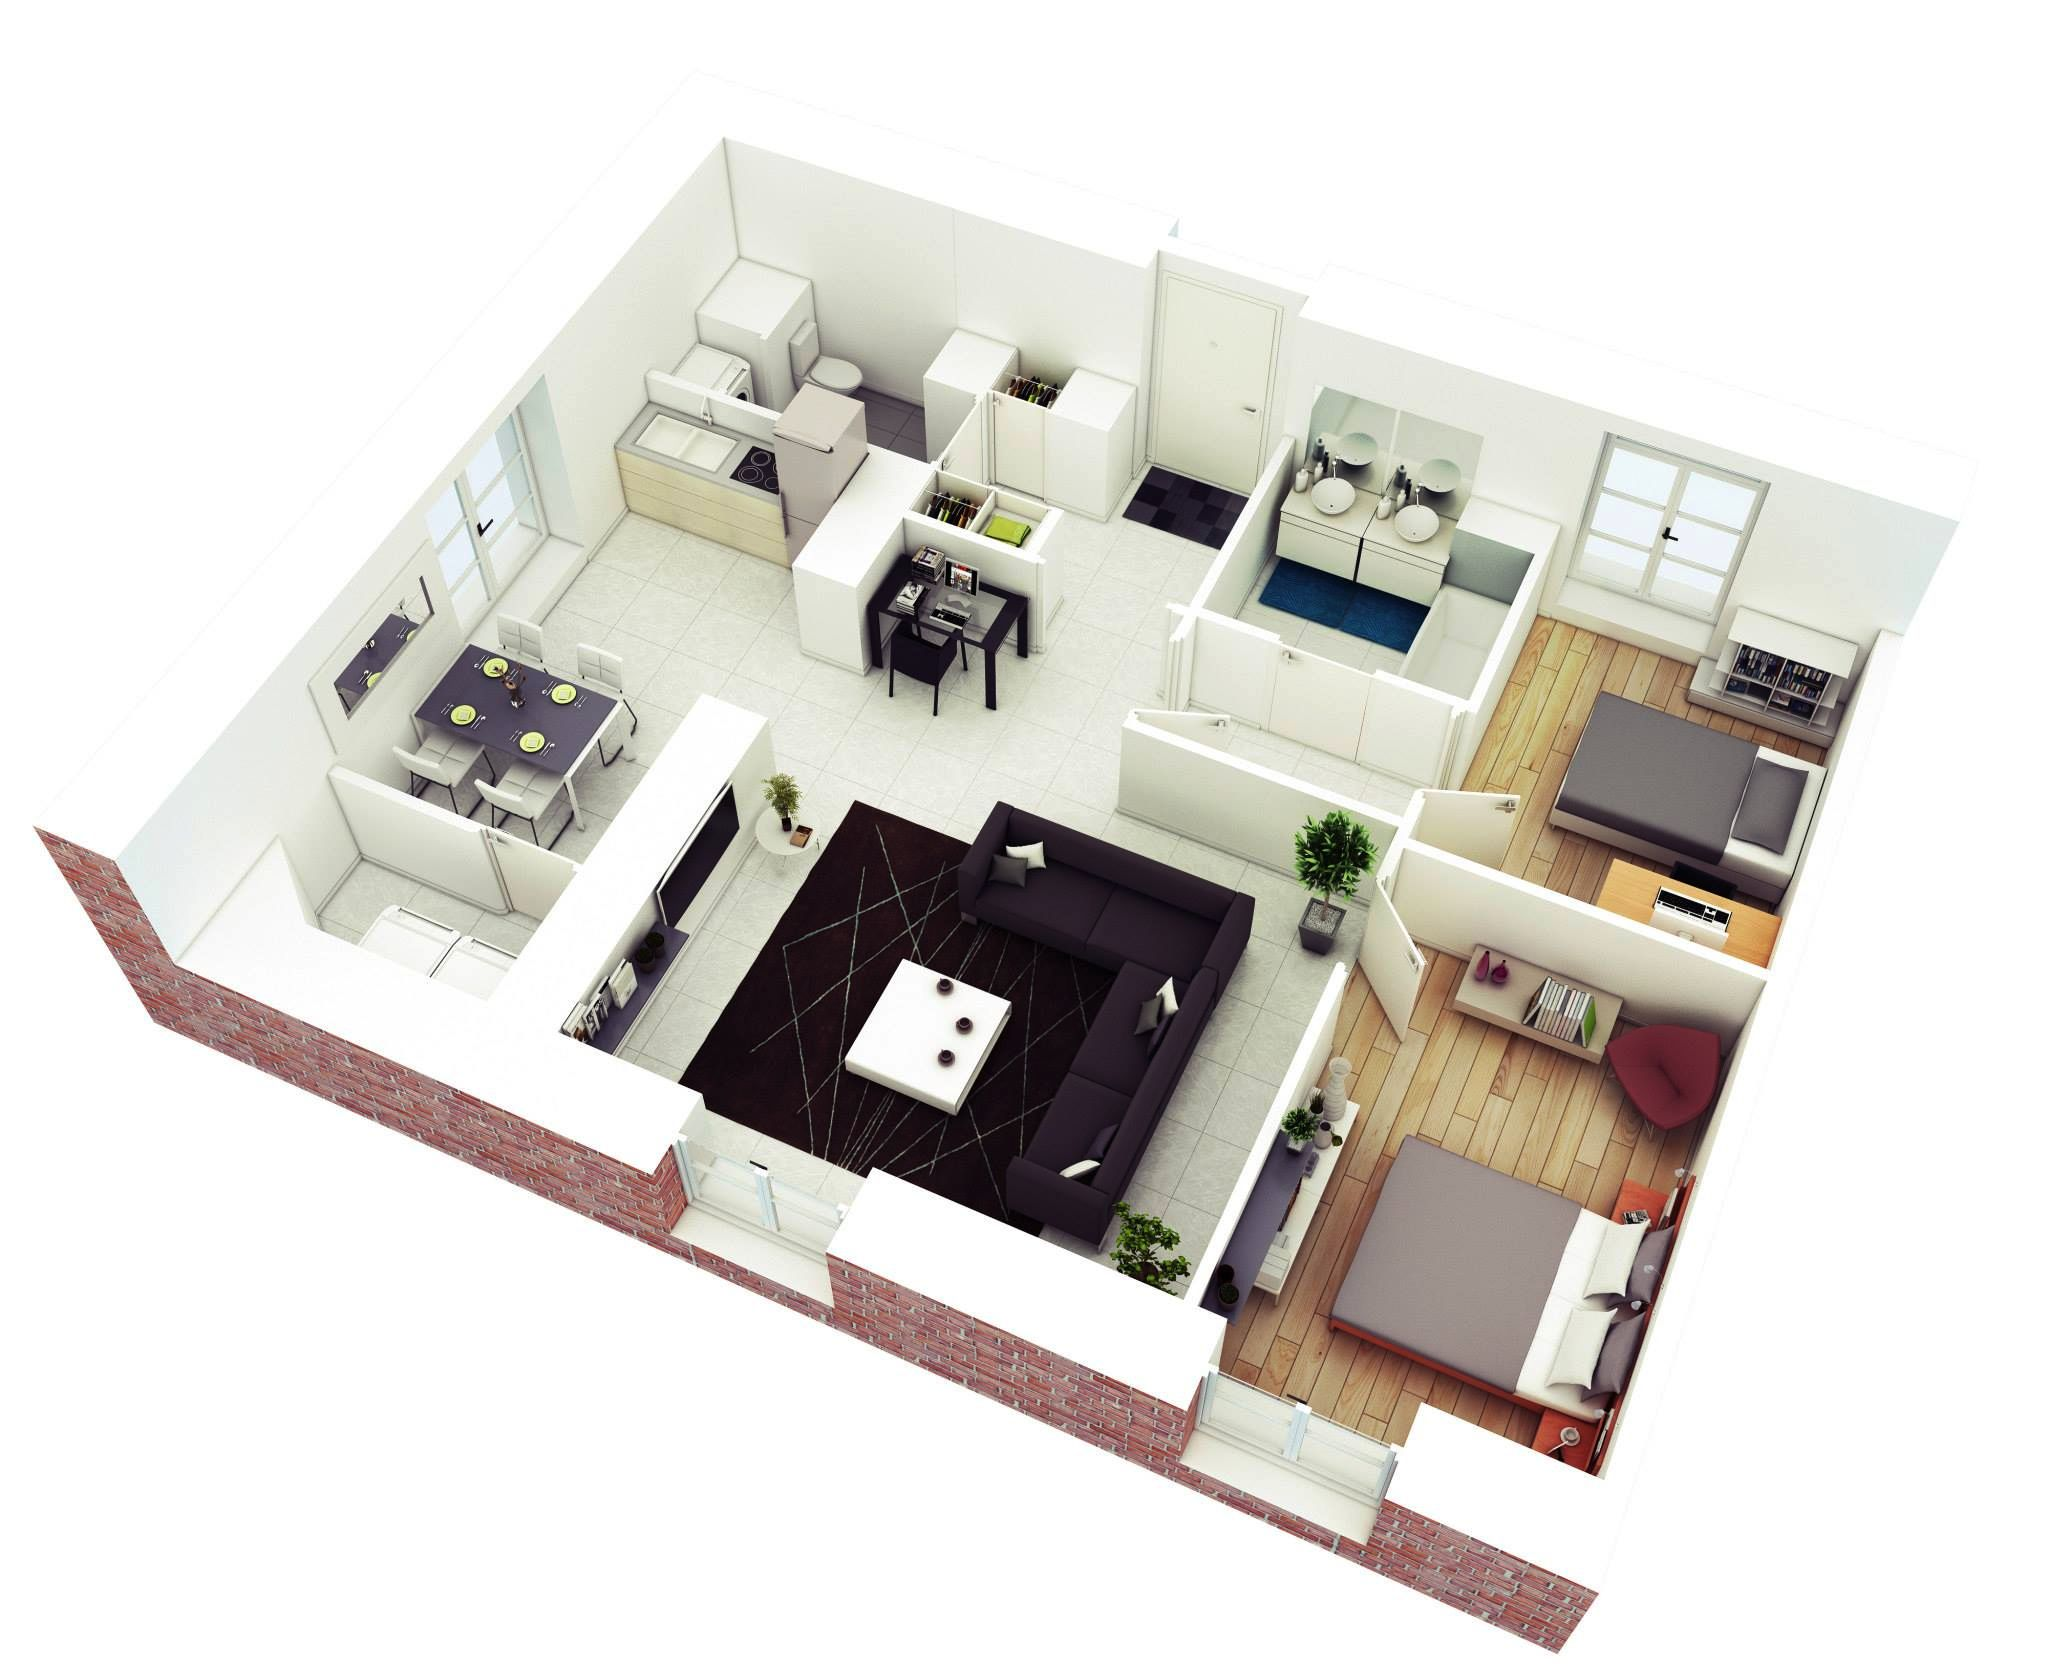 2 bedroom floor plans. Understanding 3D Floor Plans And Finding The Right Layout For You